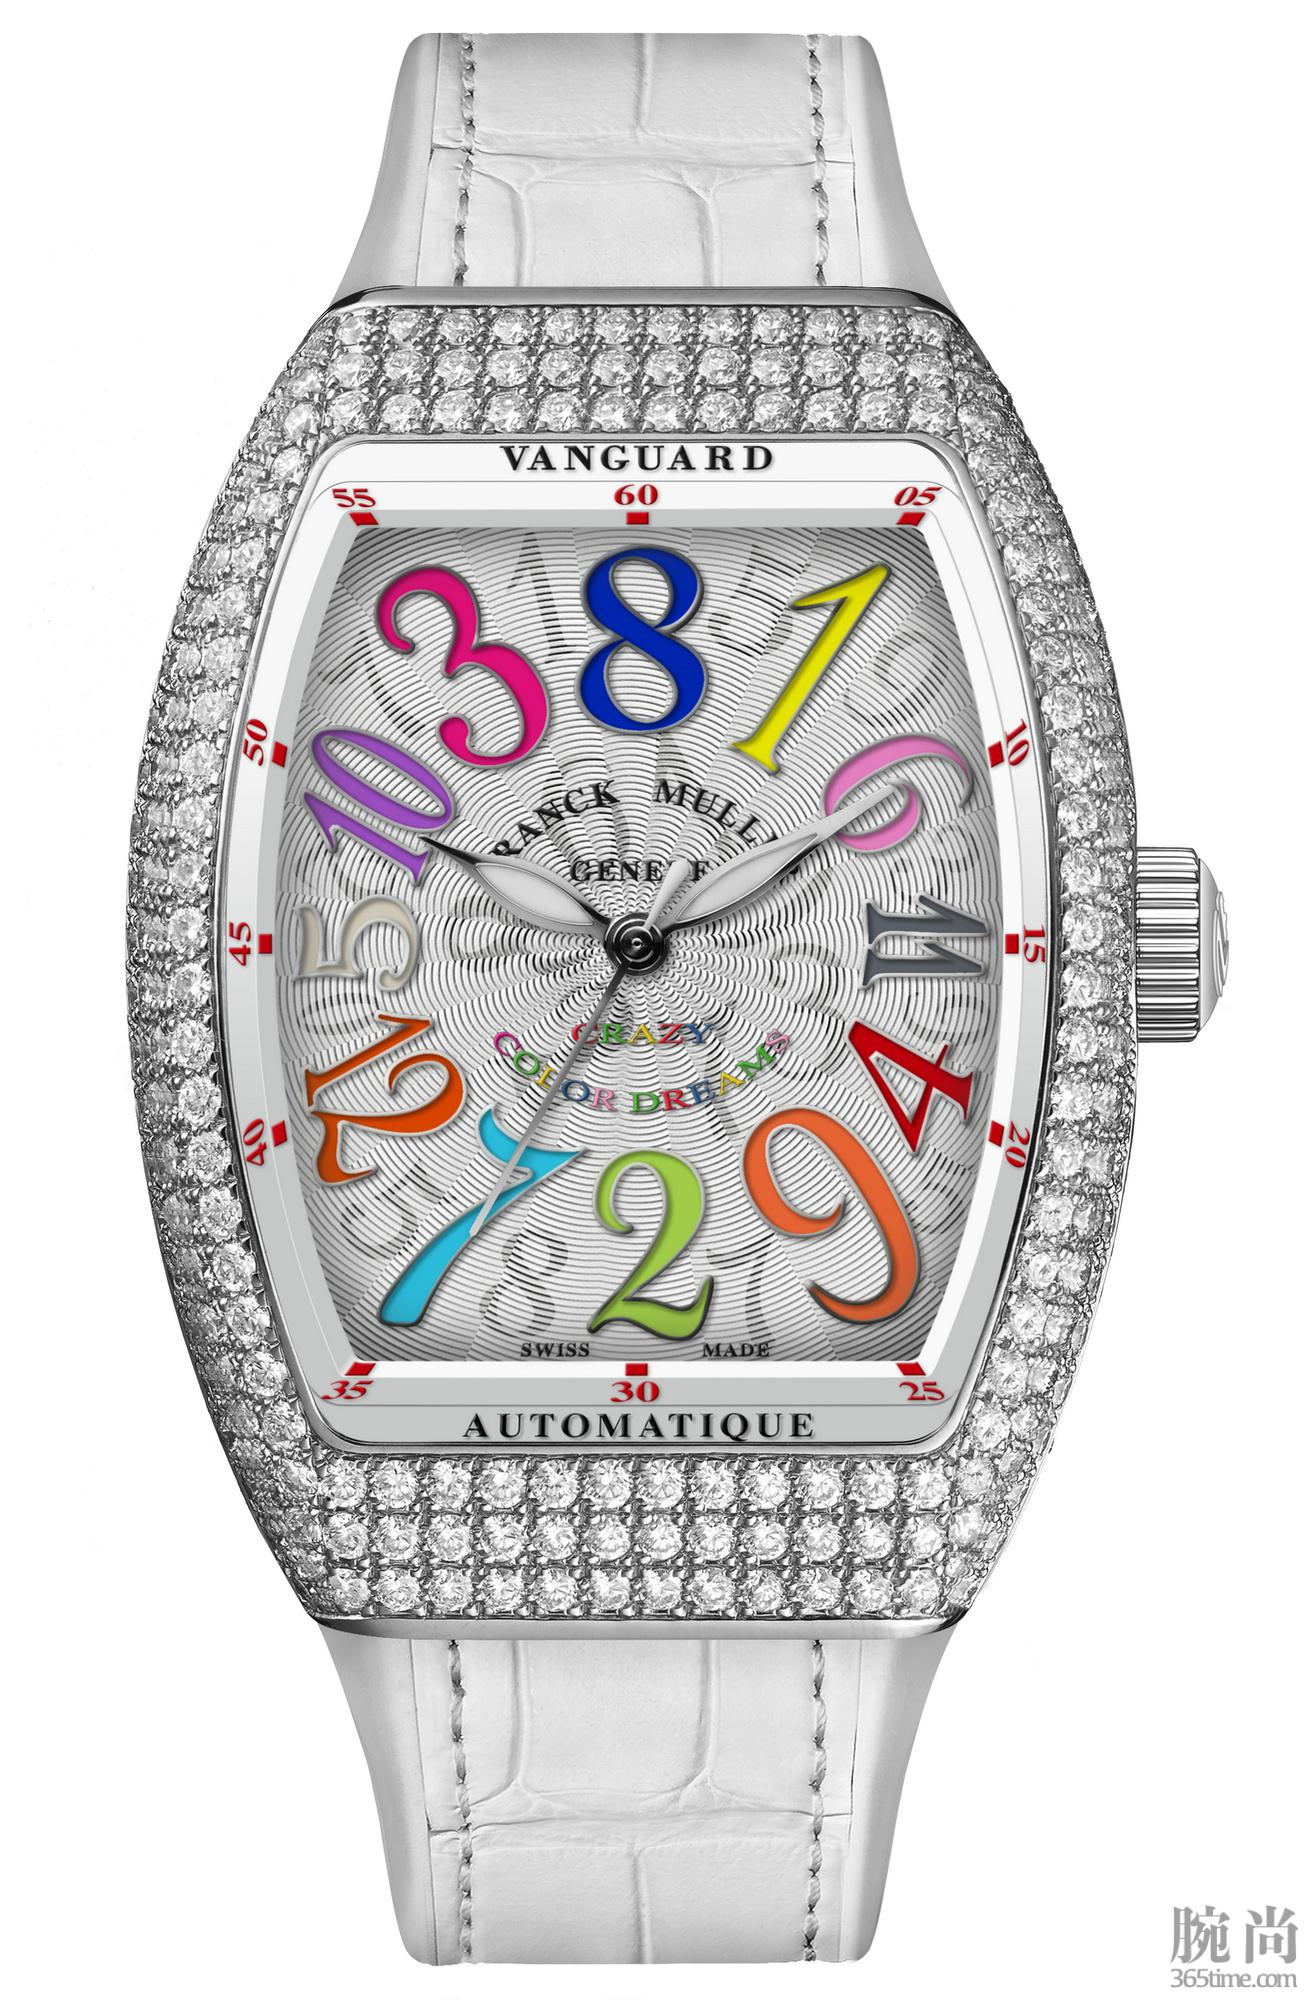 Vanguard Crazy Hours Lady in Stainless Steel with diamonds (2).jpg